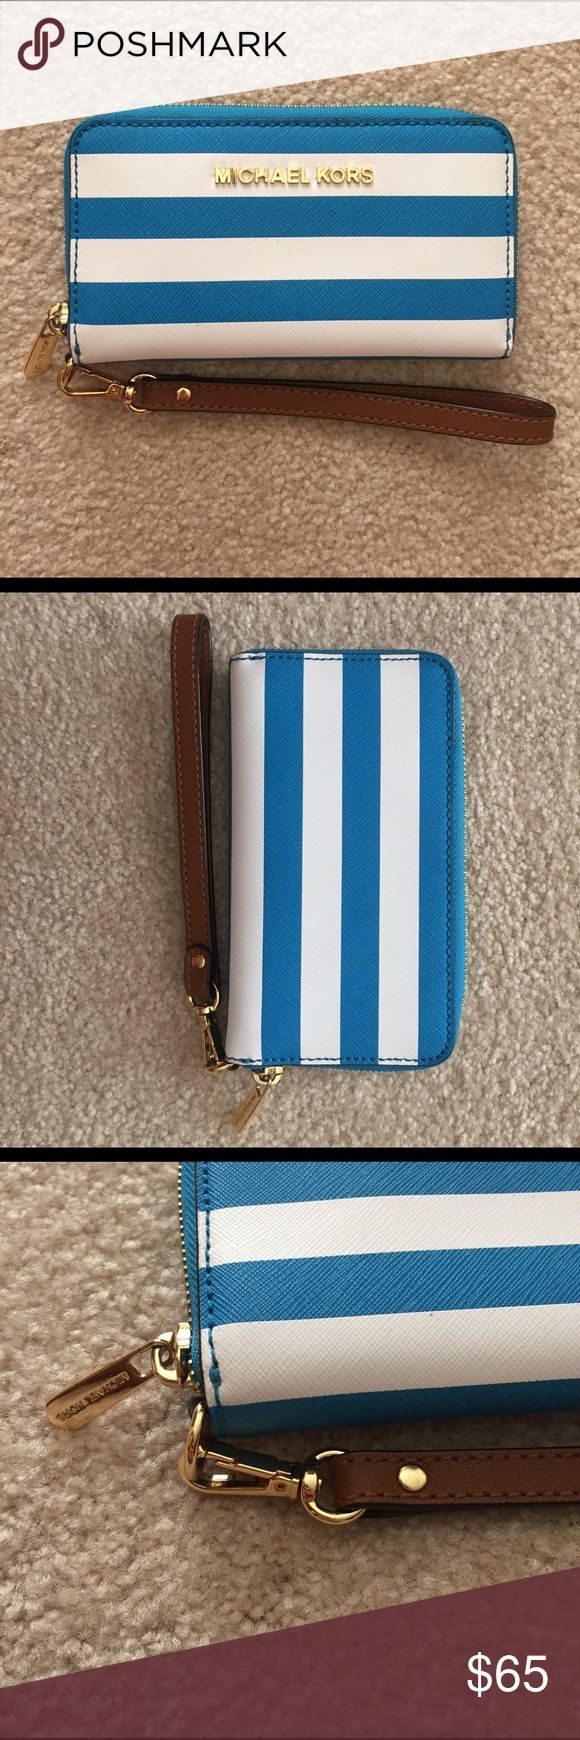 New Michael Kors Wristlet/wallet Aqua blue and white striped Michael Kors wristlet/wallet. Perfect condition, new without tags. Never used. Pet free smoke free home. MICHAEL Michael Kors Bags Clutches & Wristlets